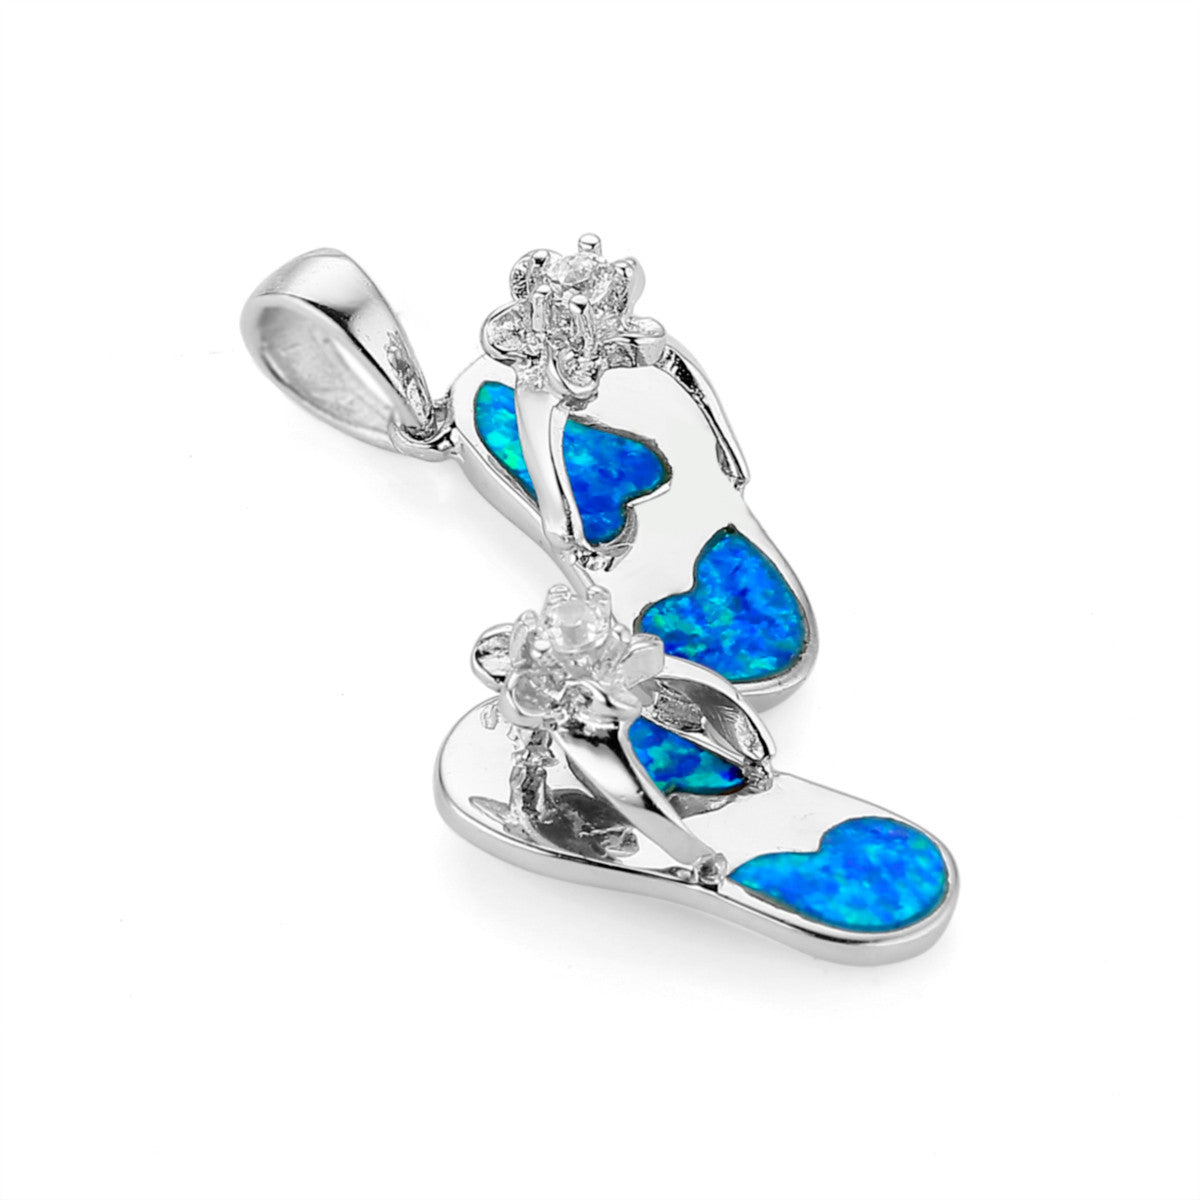 fire opal brand wonderful sterling fashion blue pendant design junxin necklace women new pendants products necklaces silver cat